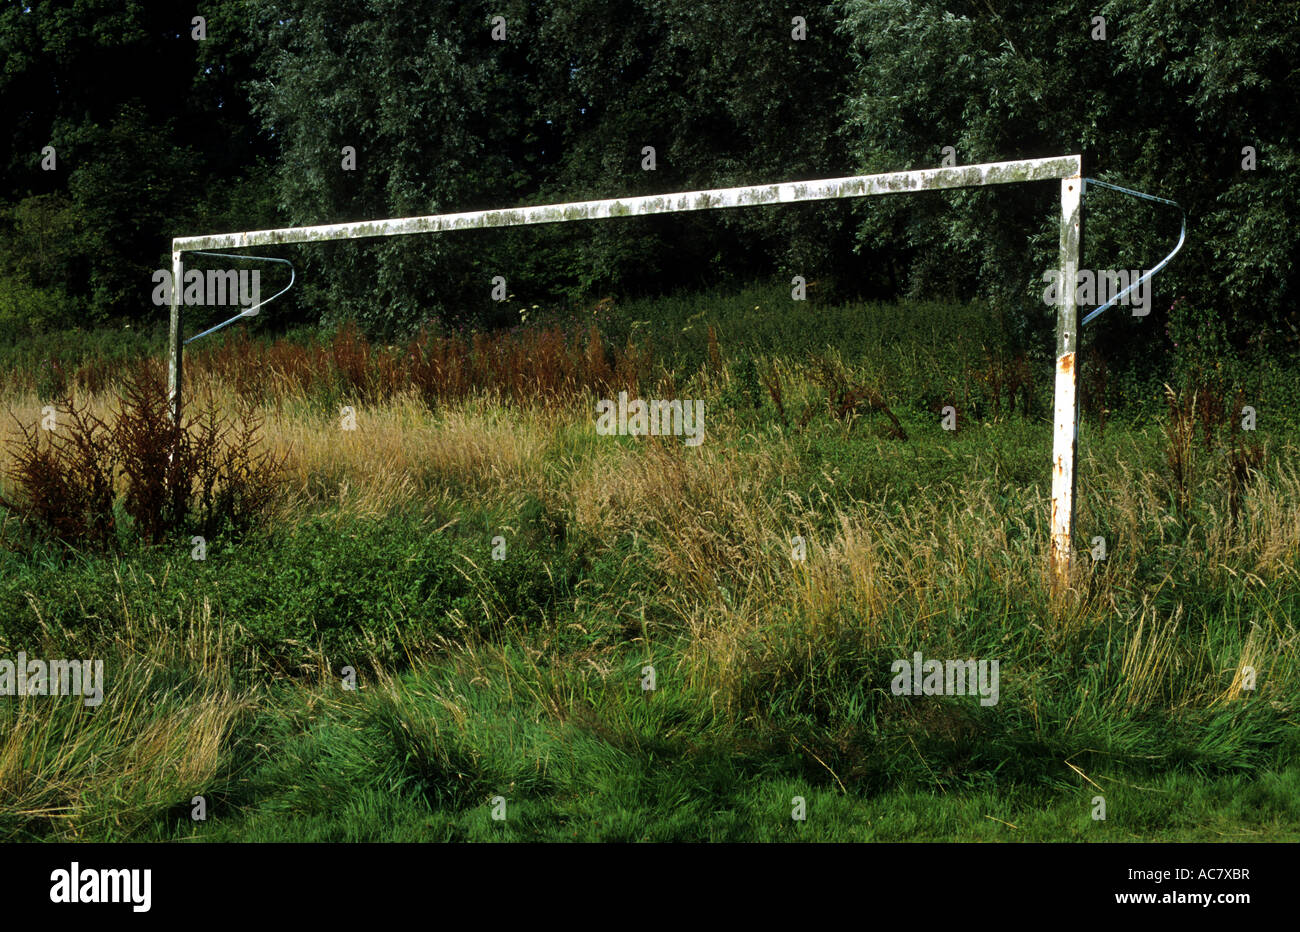 How Long Is A Football Pitch >> Overgrown Football Pitch And Goal Posts Melton Suffolk Uk